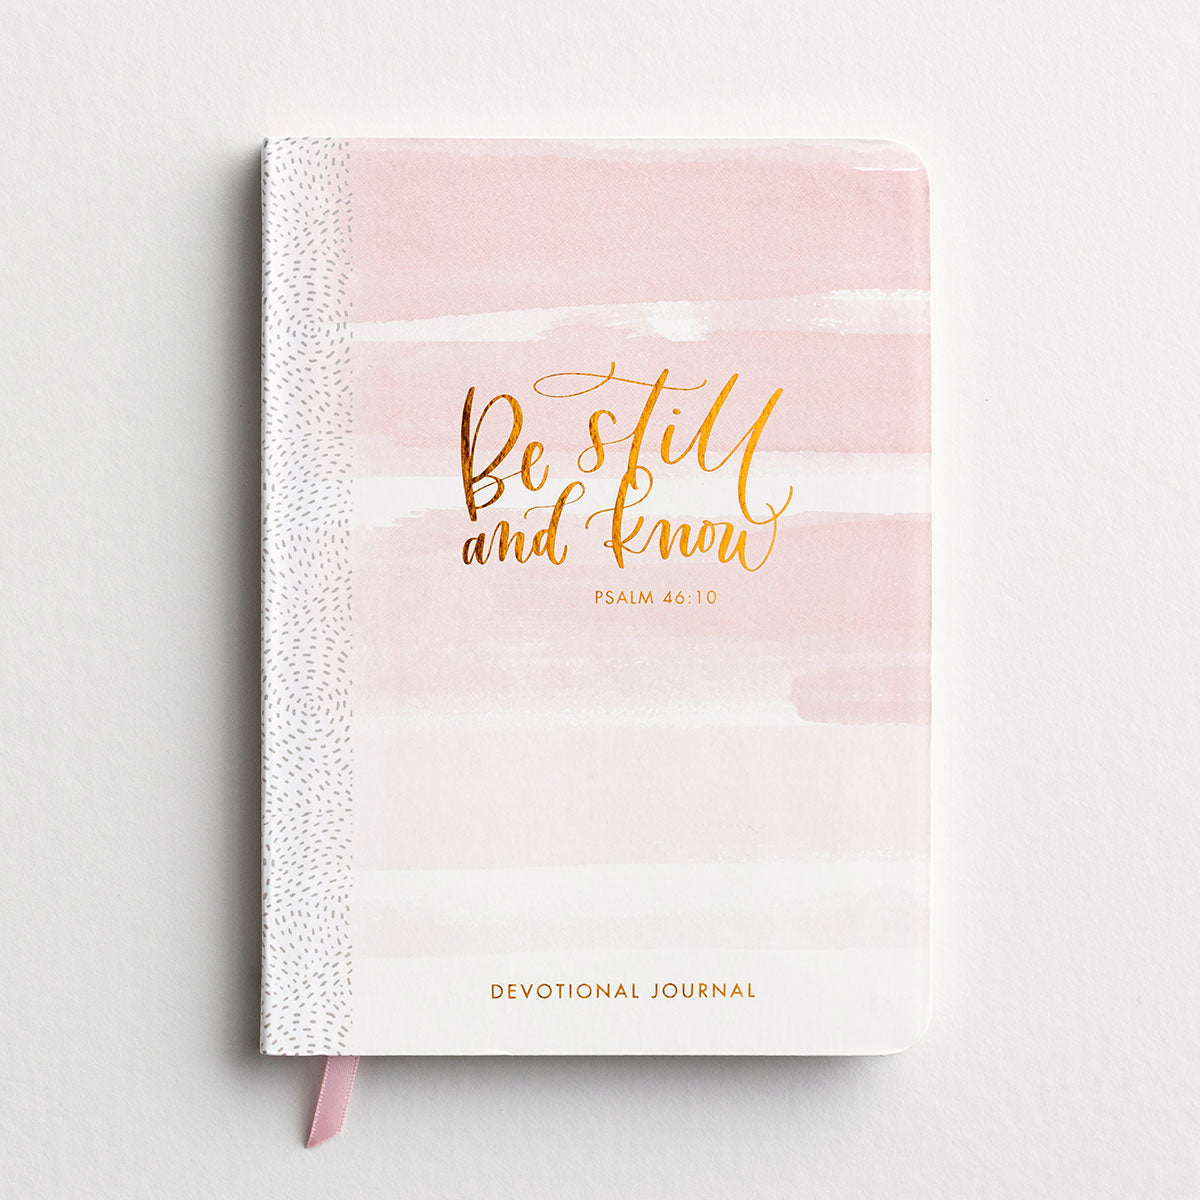 Be Still And Know - Devotional Journal